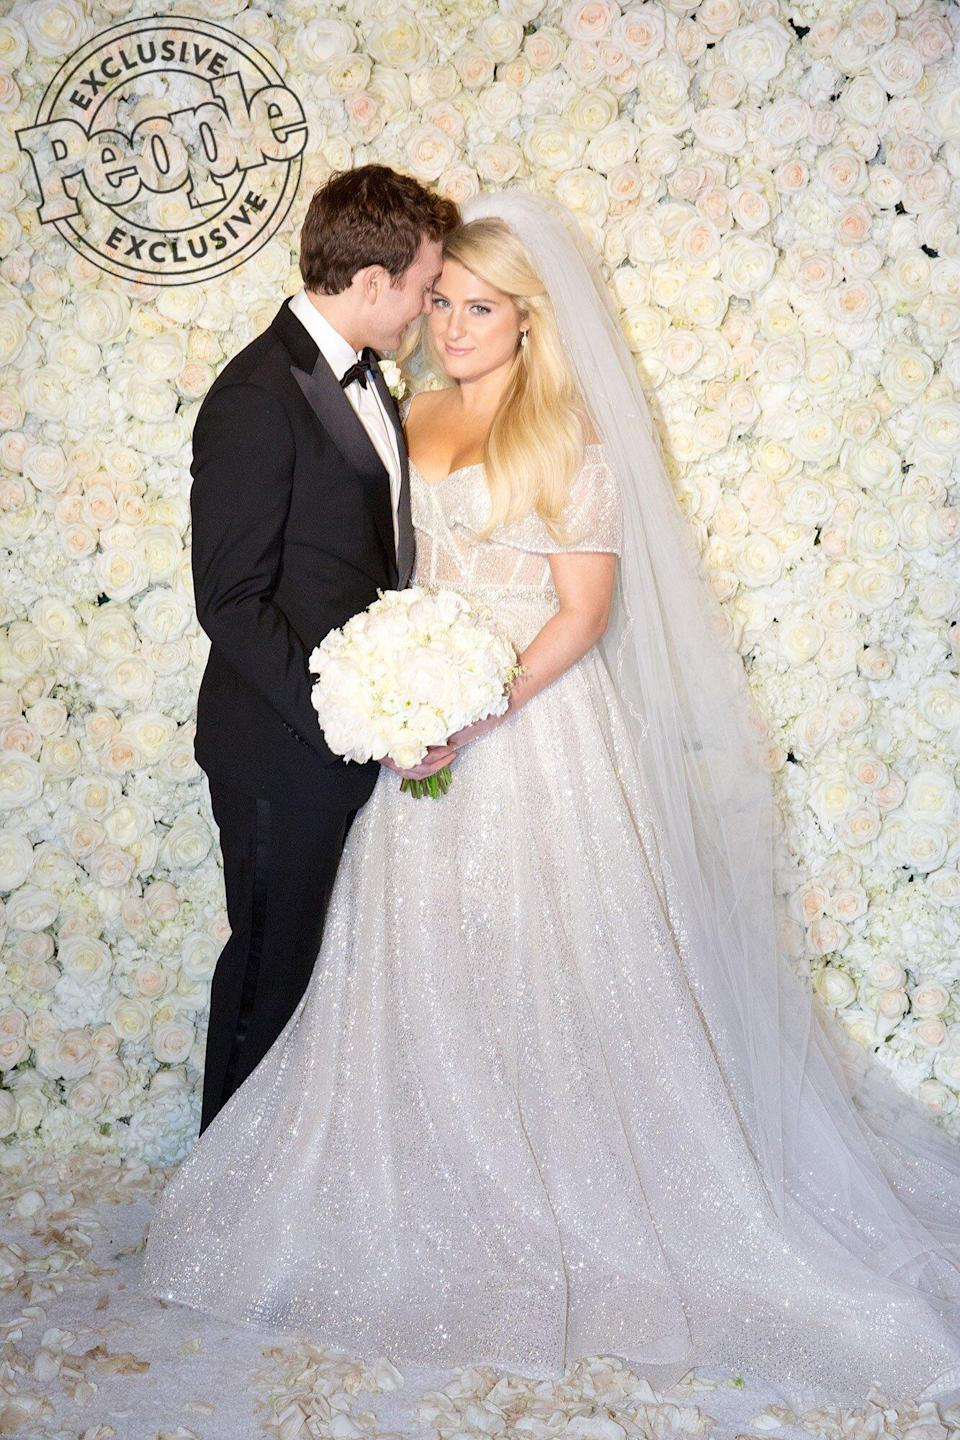 Meghan Trainor Is Pregnant! Singer and Husband Daryl Sabara Expecting First Child: 'Beyond Happy'